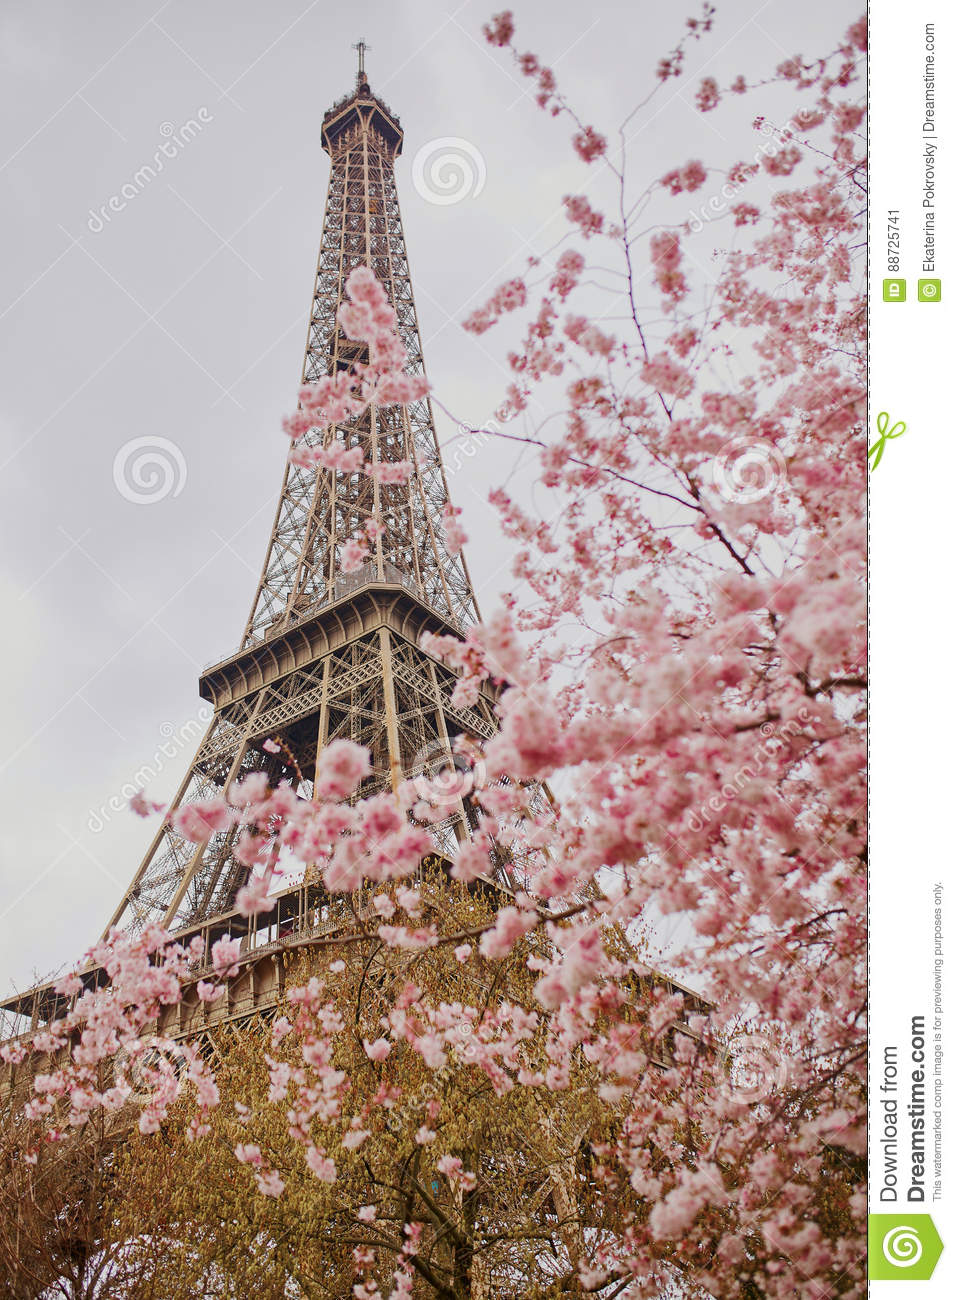 fleurs de fleurs de cerisier avec tour eiffel paris photo stock image 88725741. Black Bedroom Furniture Sets. Home Design Ideas